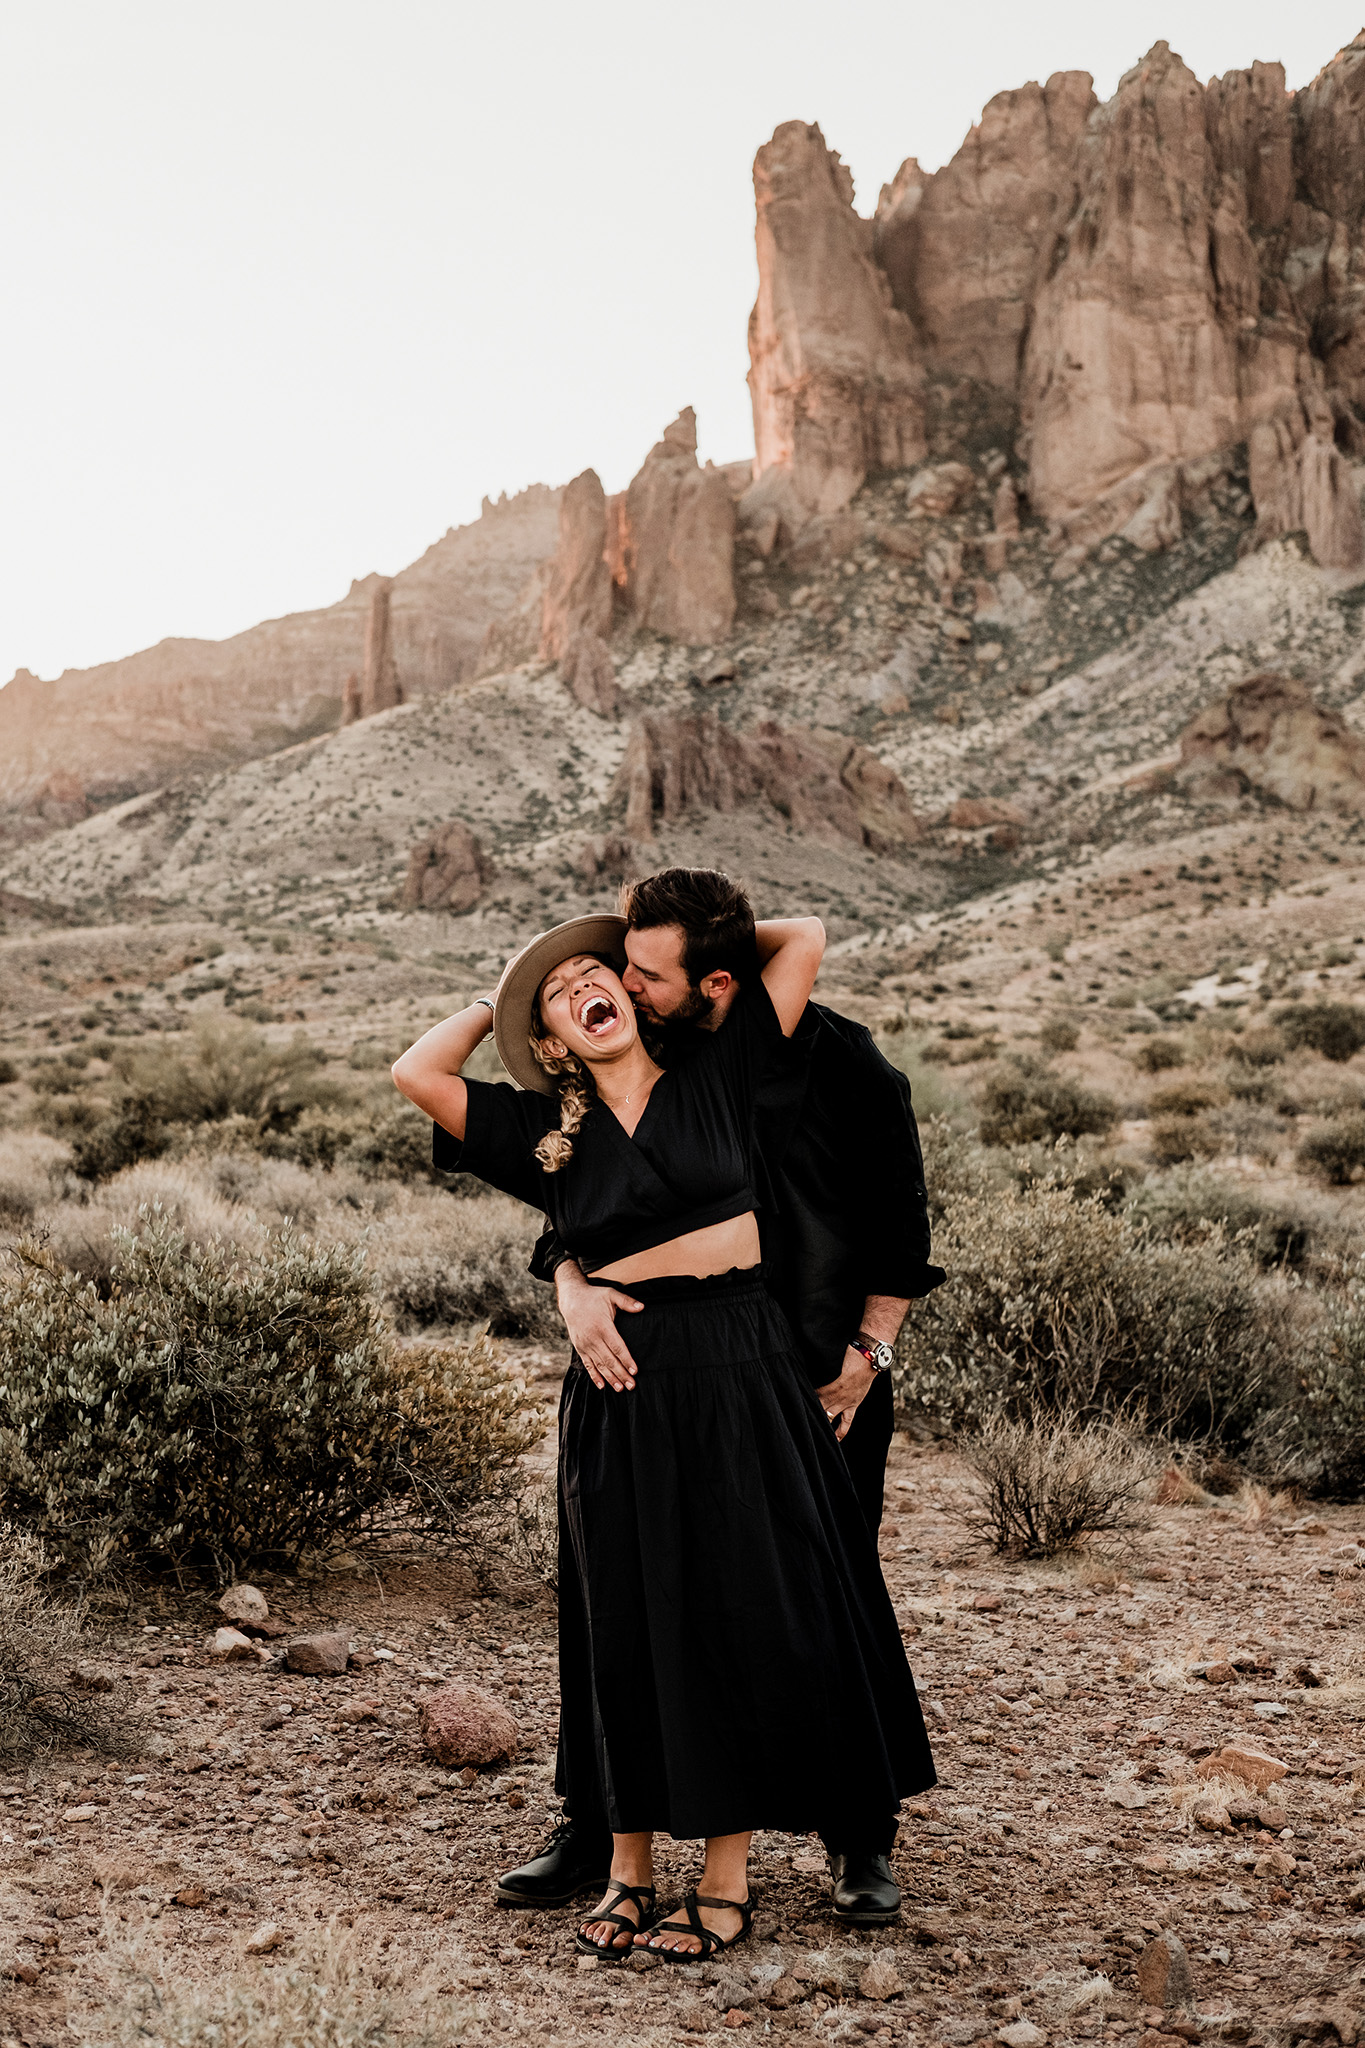 Arizona-Desert-Intimate-Wedding-Photographer-Lost-Dutchman-State-Park (20).jpg